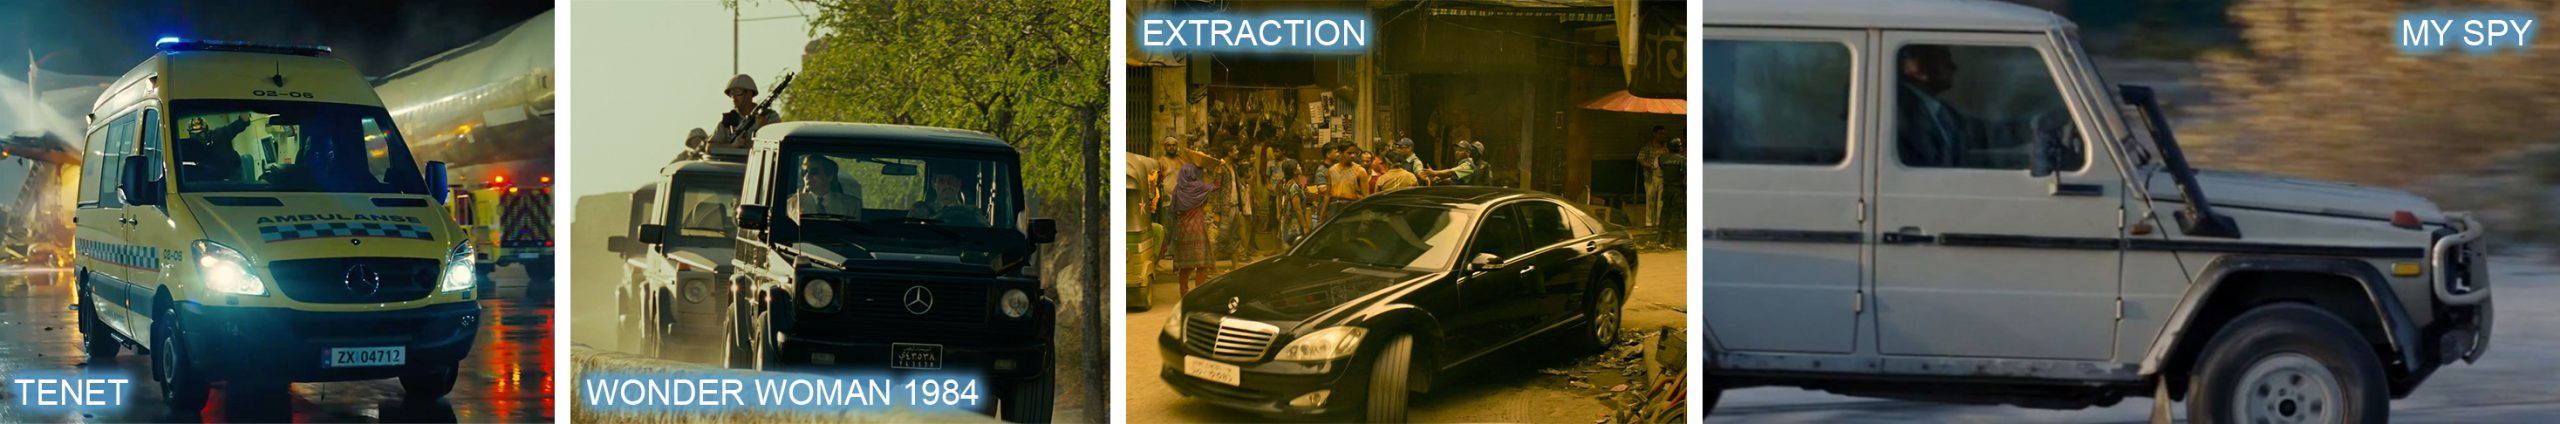 Mercedes-Benz product placement TENET, WONDER WOMAN 1984, EXTRACTION and MY SPY.